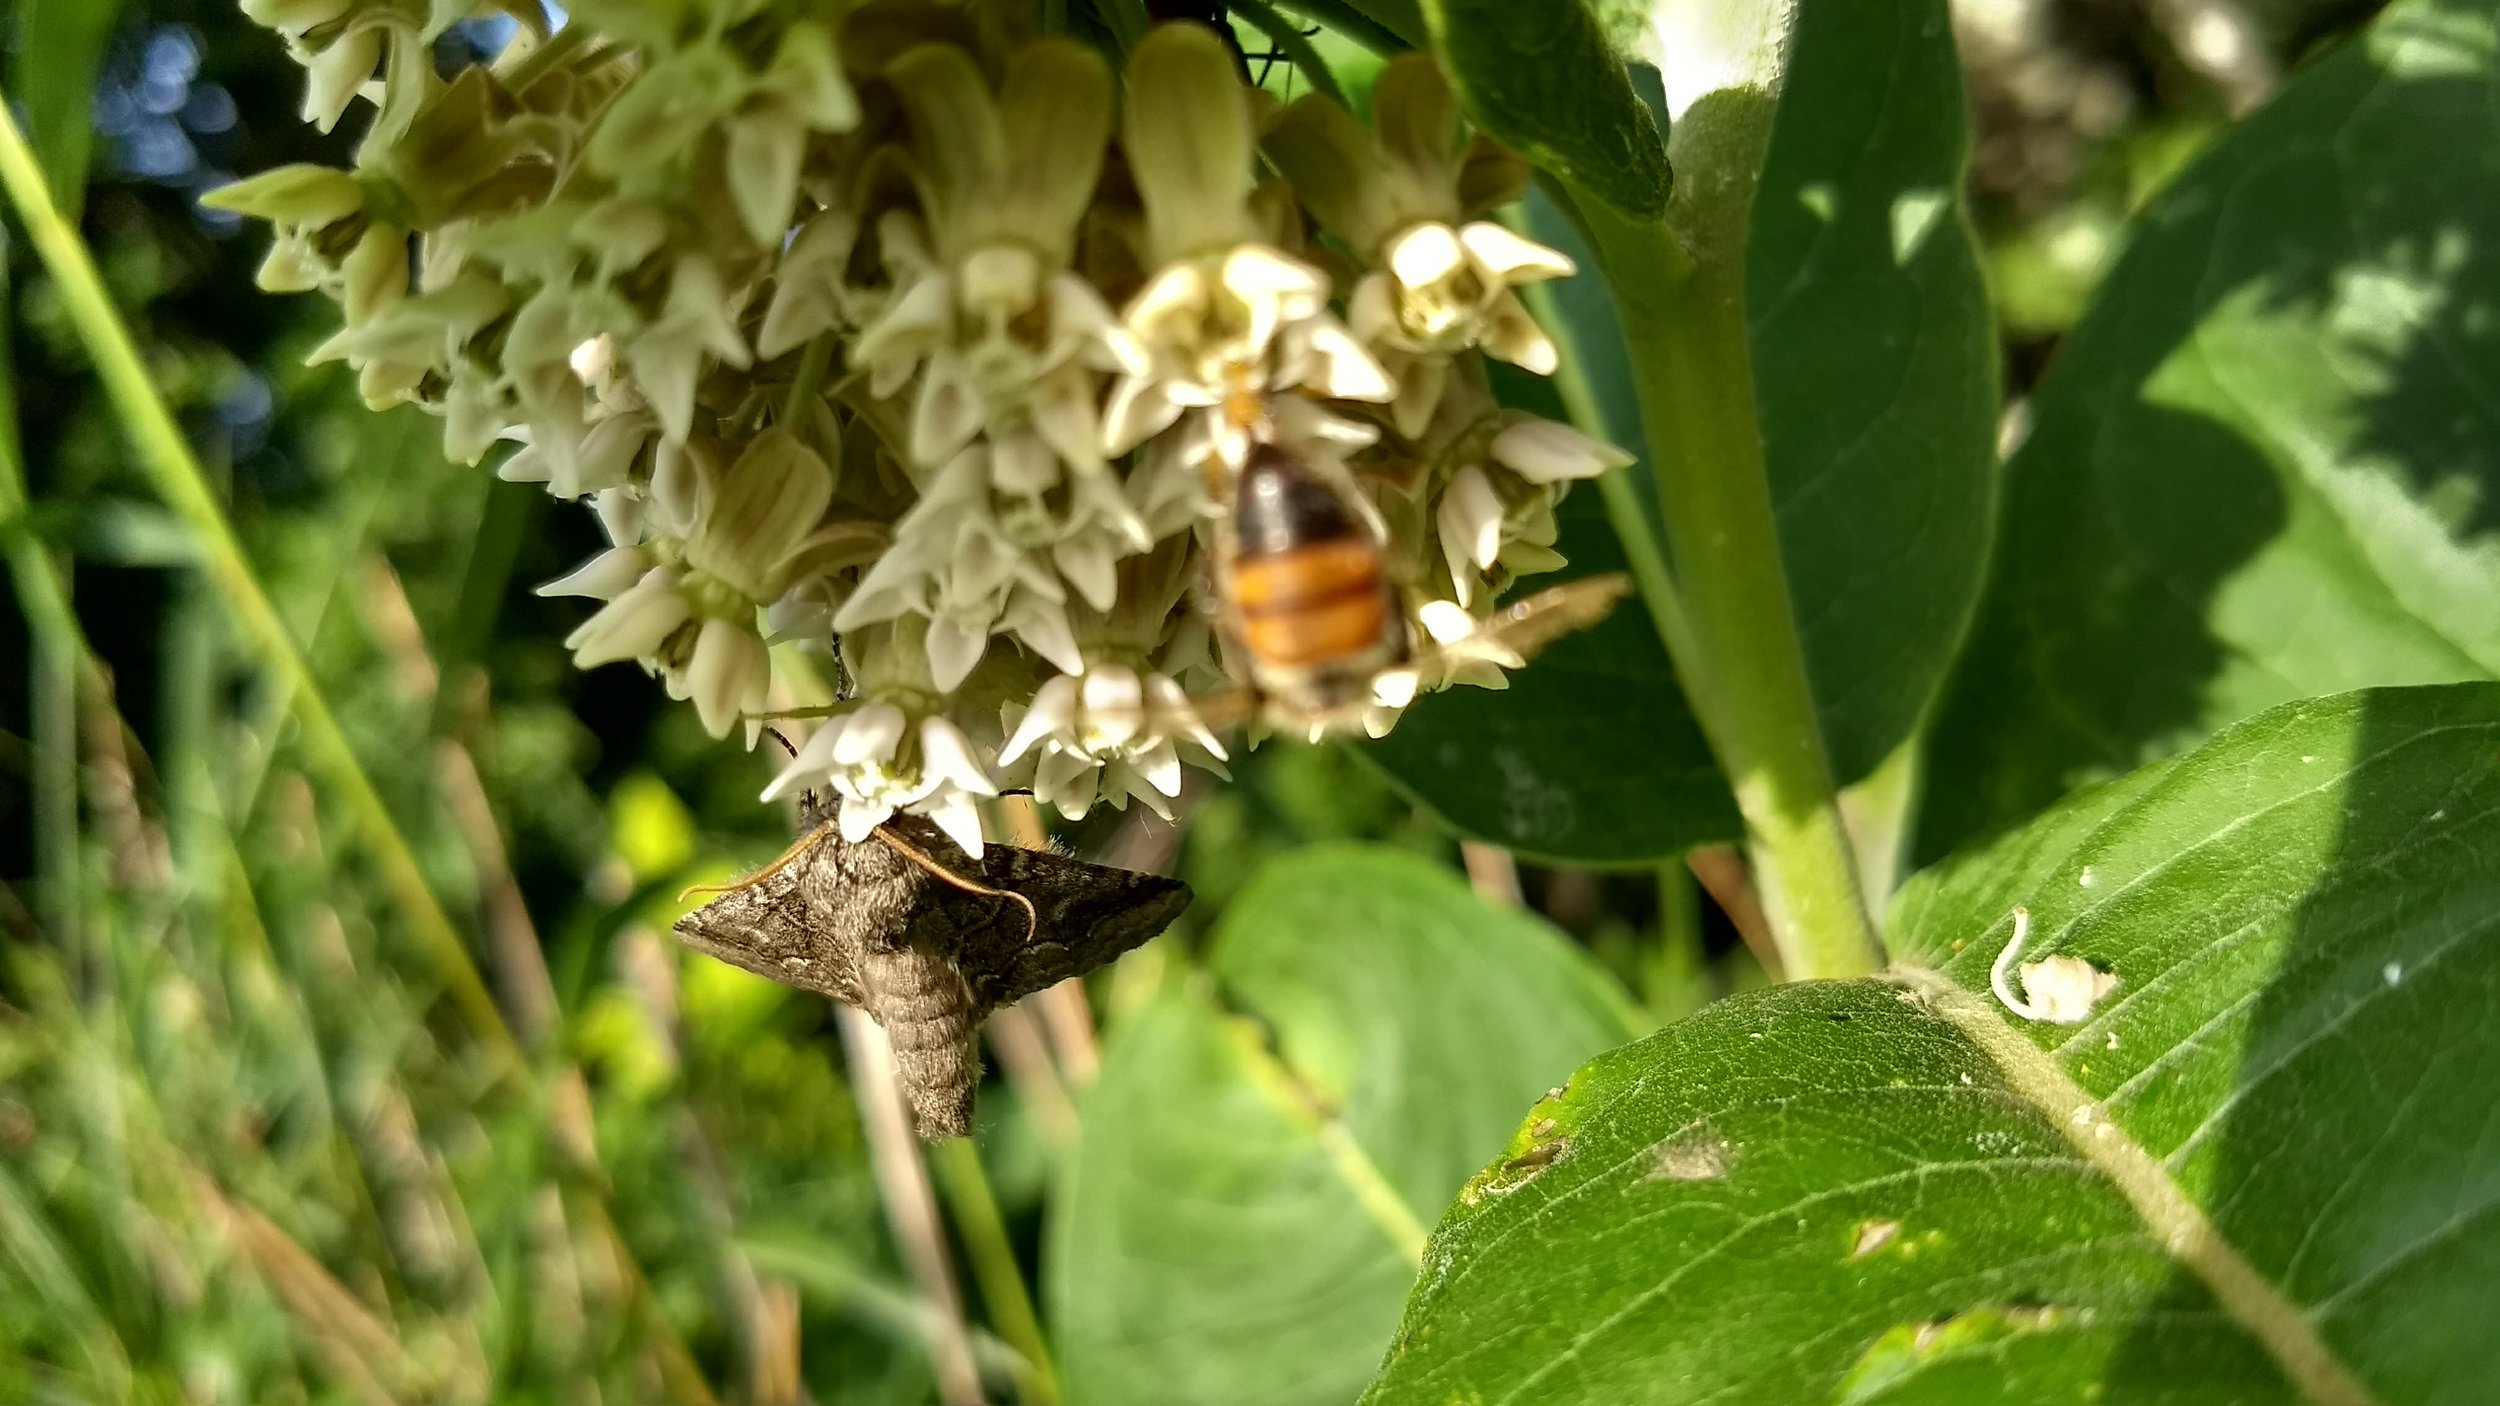 A moth and a honey bee fell victim to the sticky pollinia - trapped by the plant's pollen packets, they died in the blossom.